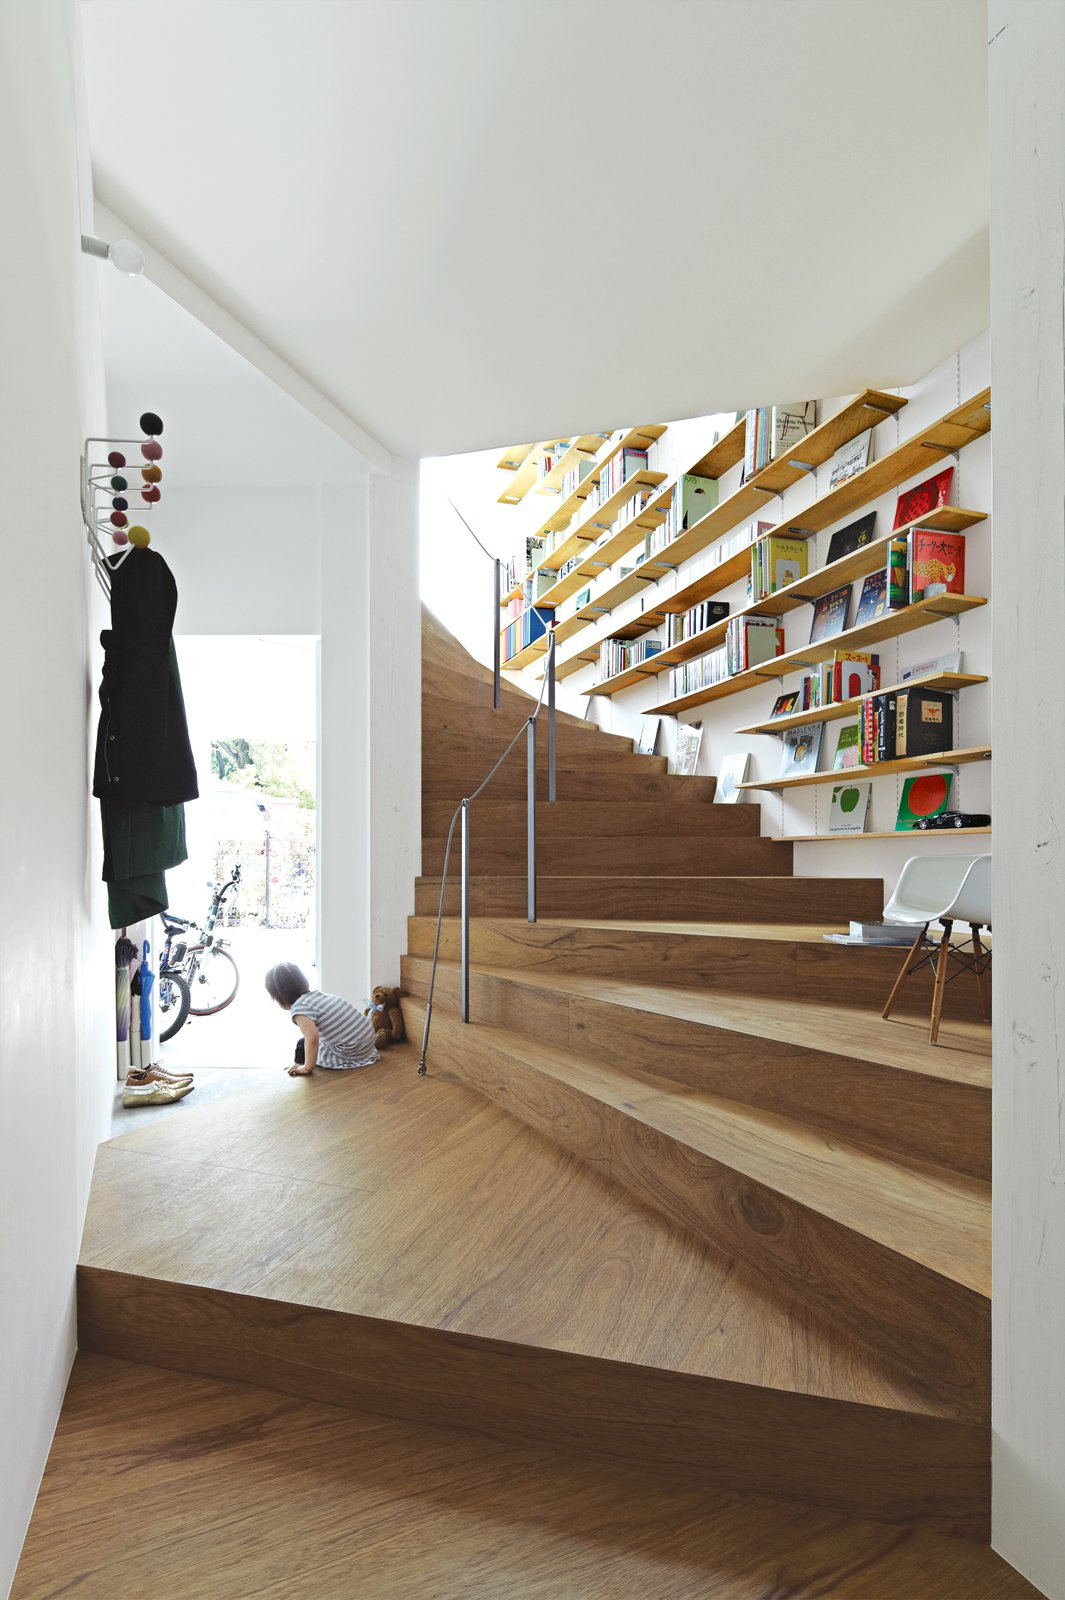 Bookshelves add extra utility to the undulating staircase in Tokyo's 921-square-foot Coil house. The space was designed by architect Akihisa Hirata for Sakura and Ryo Sugiura, a young couple with two children.  Stairs by Jacob Resler from This Sculptural Staircase Shapes an Entire Home